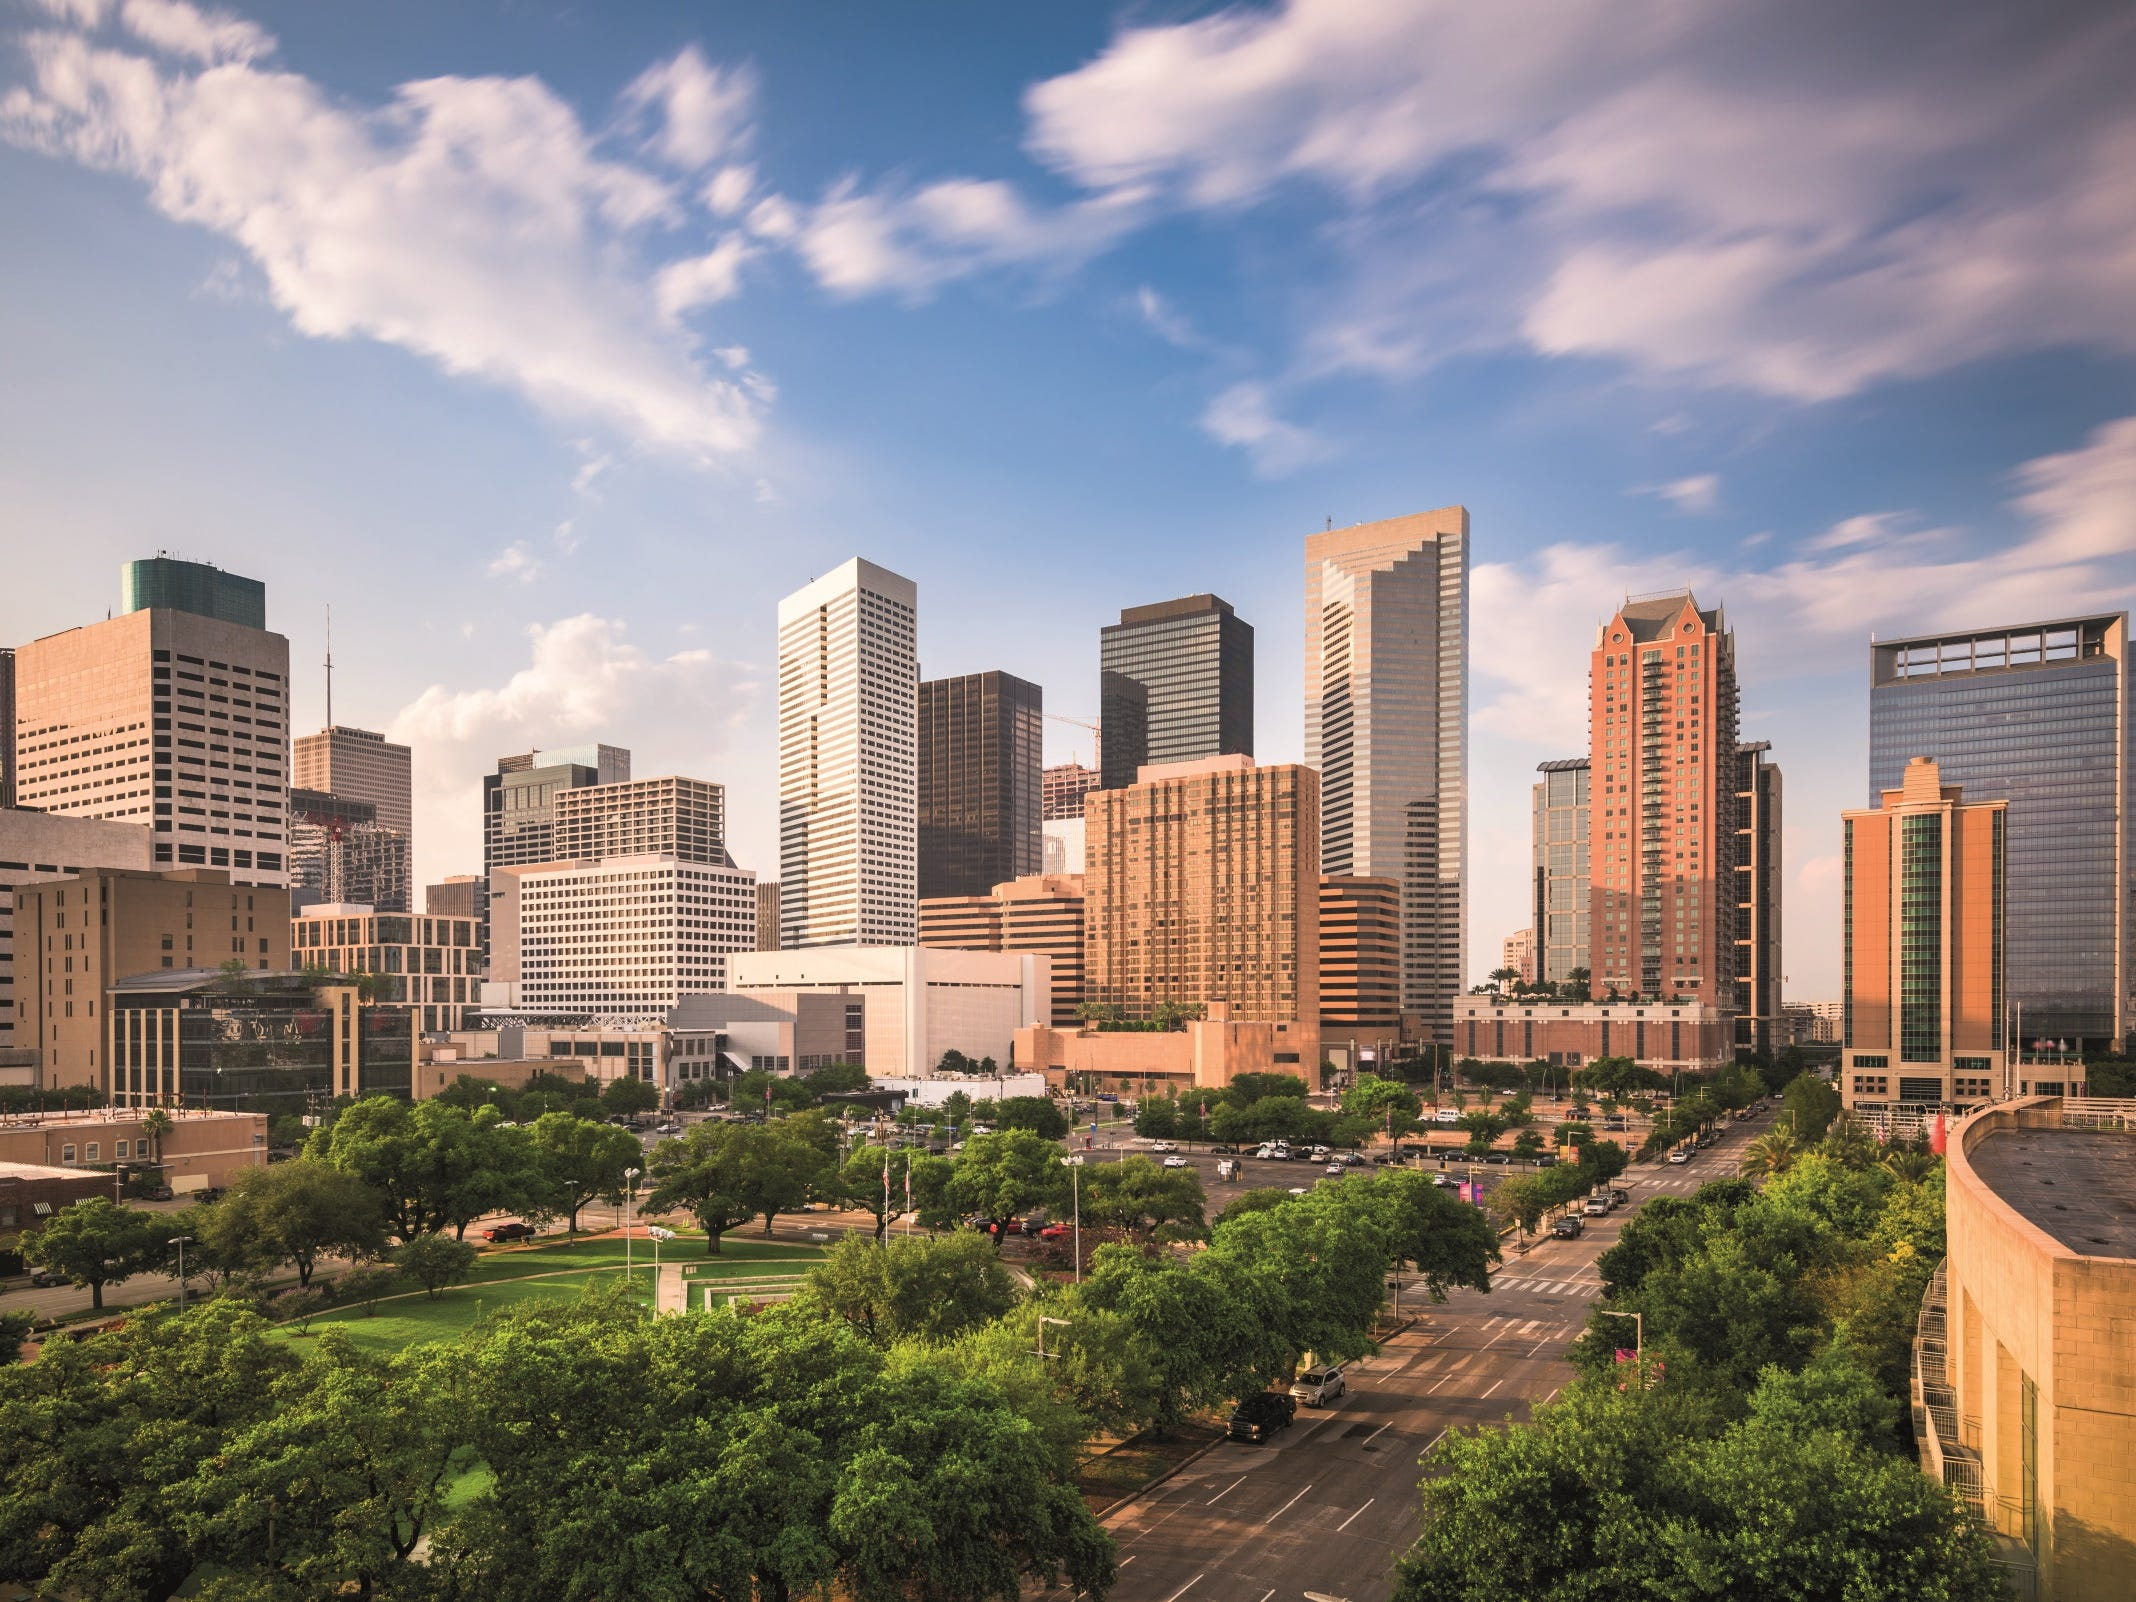 No. 5 on the list of best value places to visit in 2019 is Houston.